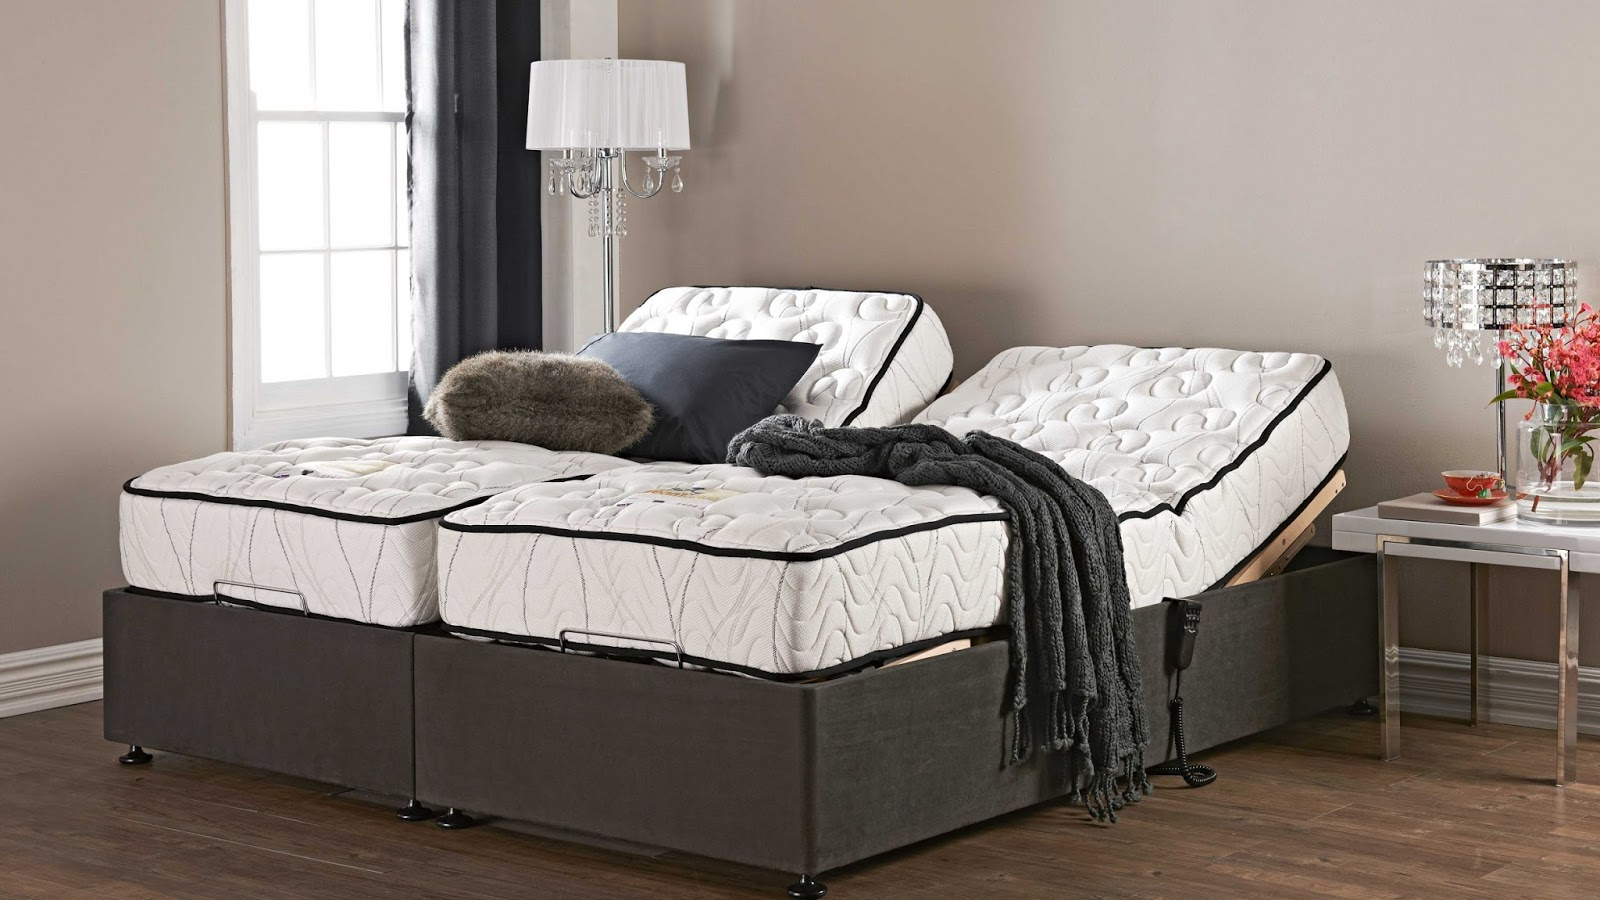 Where To Get Sheets For An Adjustable Split King Bed Blog